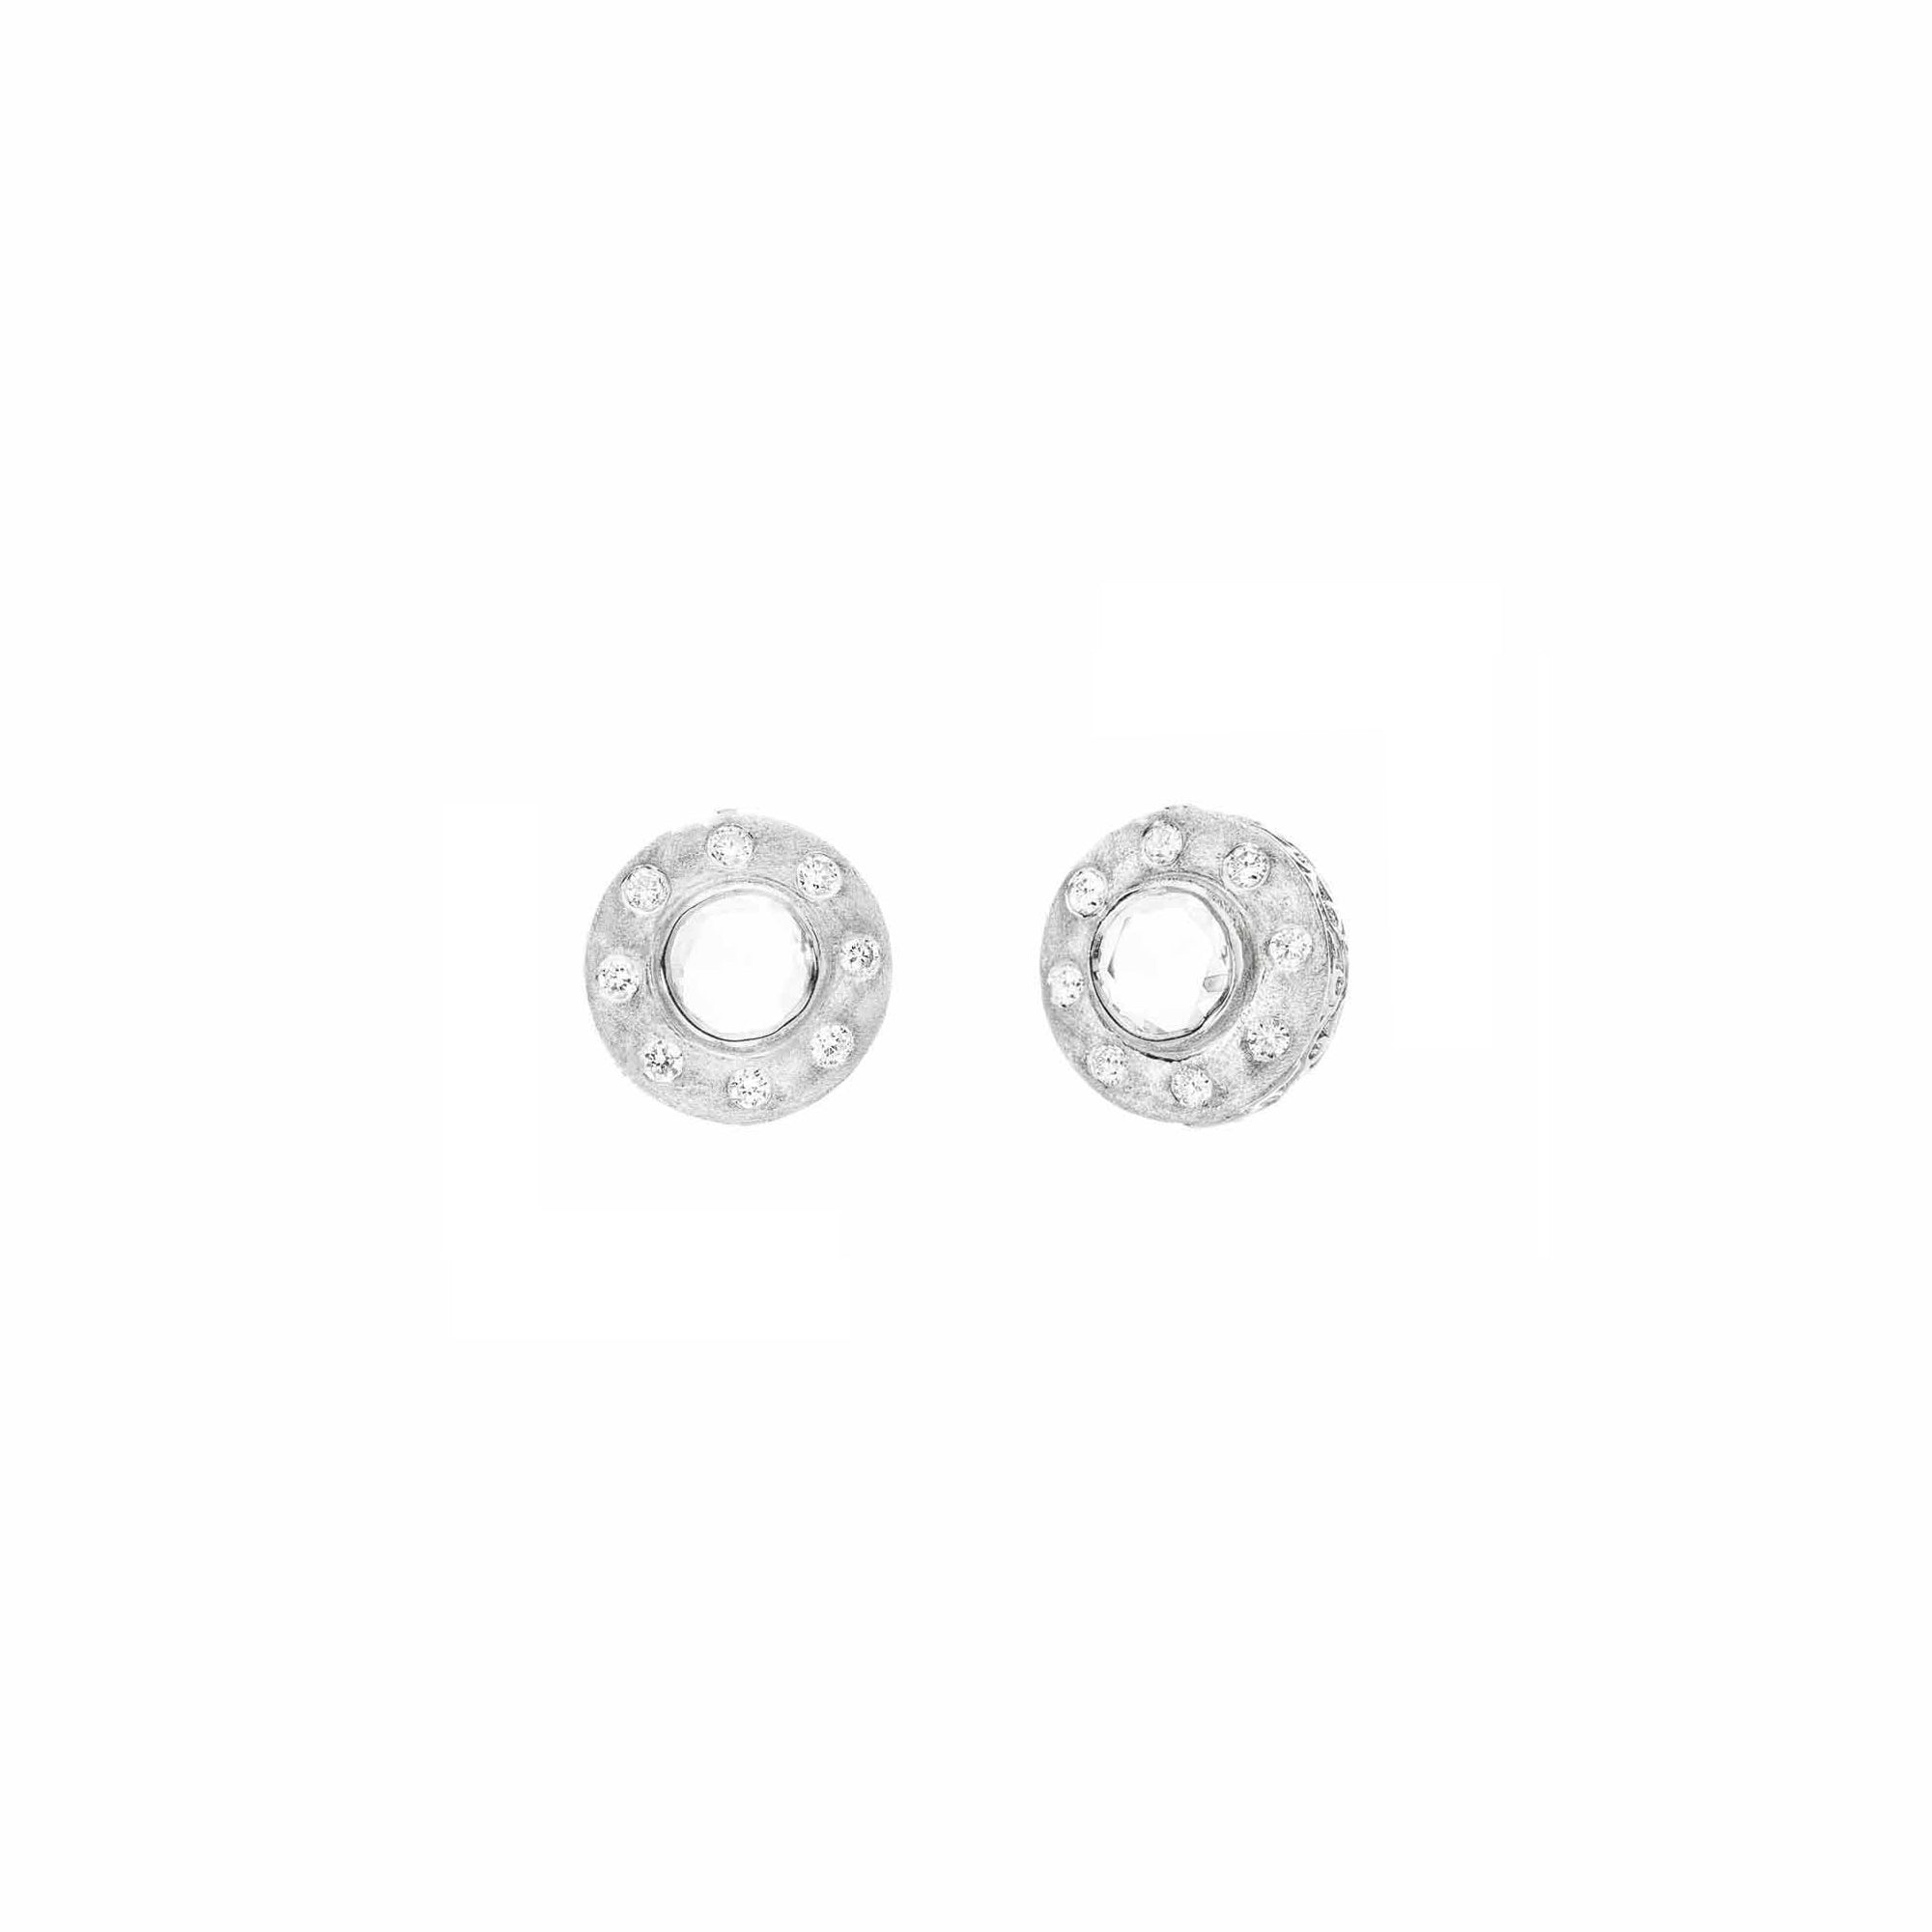 Sethi Couture The Dunes Stud Earrings - White Gold - Earrings - Broken English Jewelry